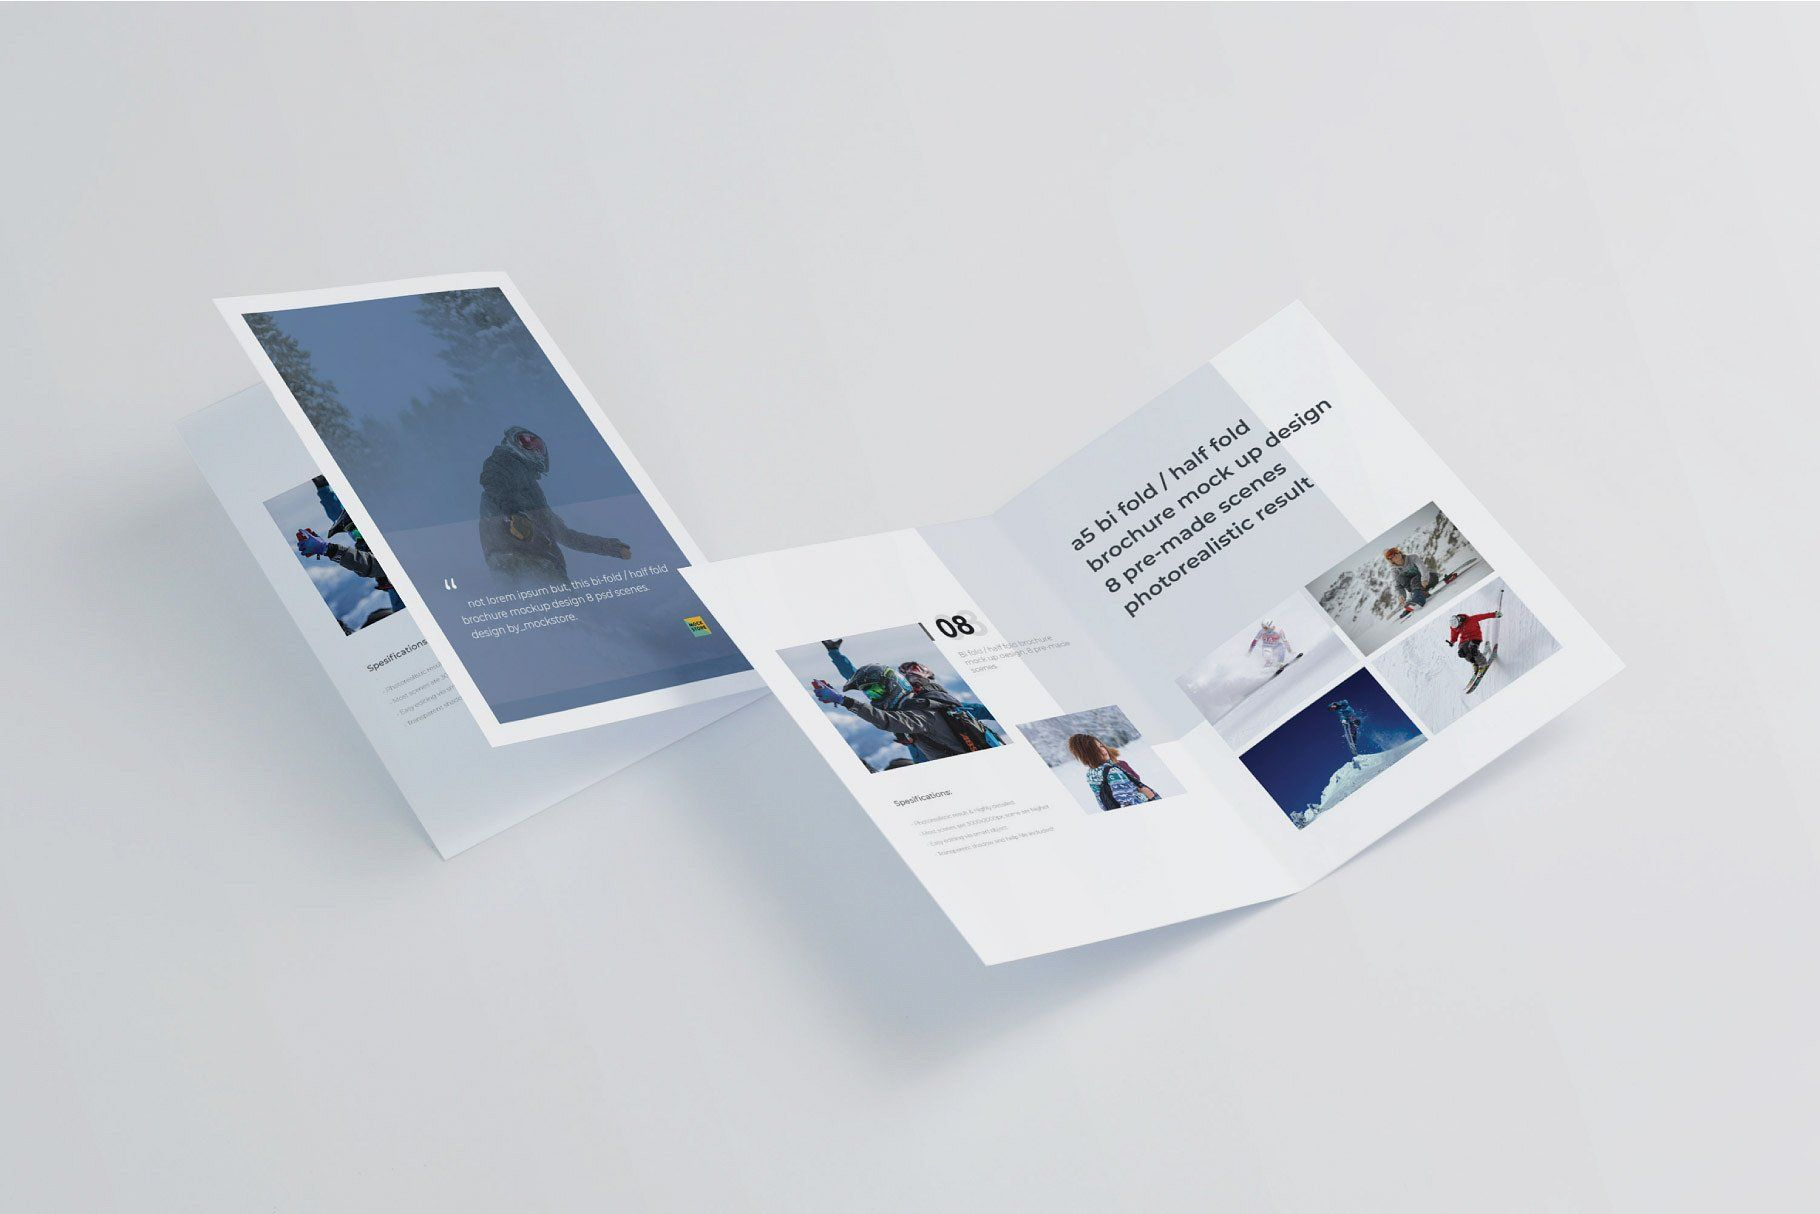 A5 Bifold/Half-Fold Brochure Mockup #Separated#Fully#Objects